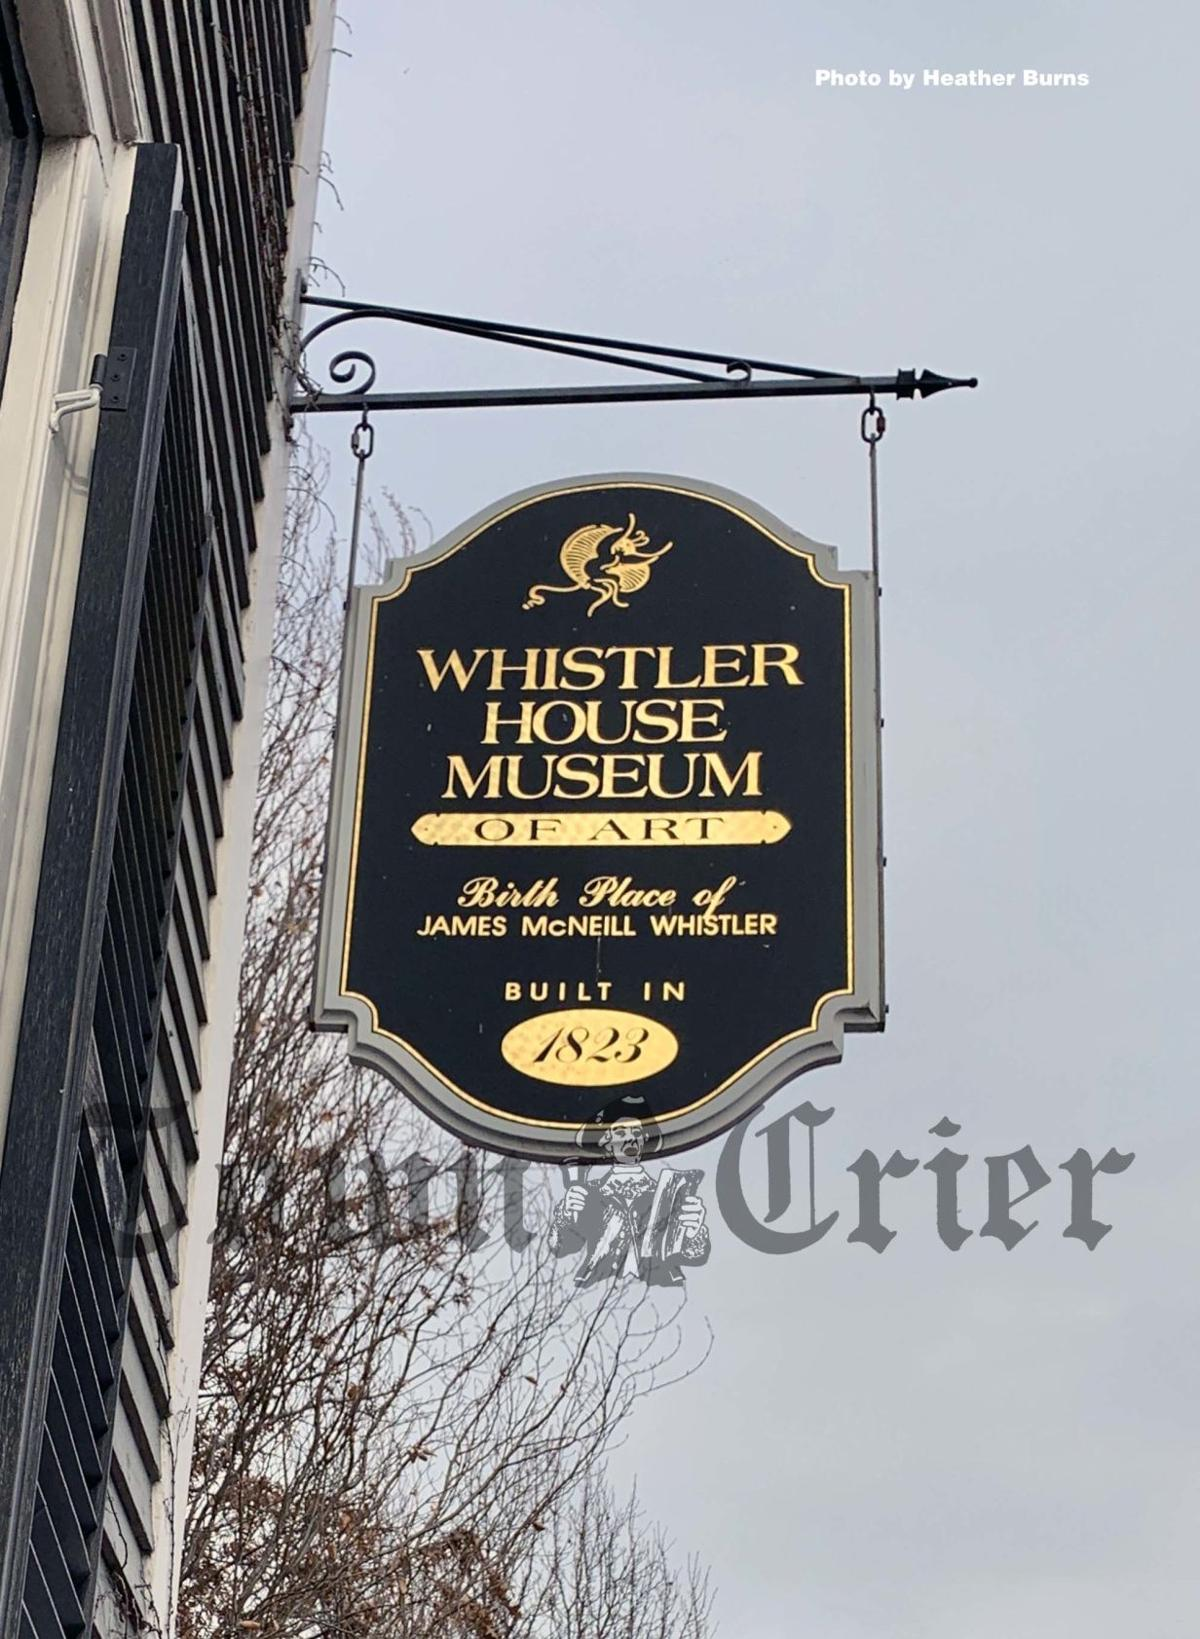 The Whistler House Museum of Art